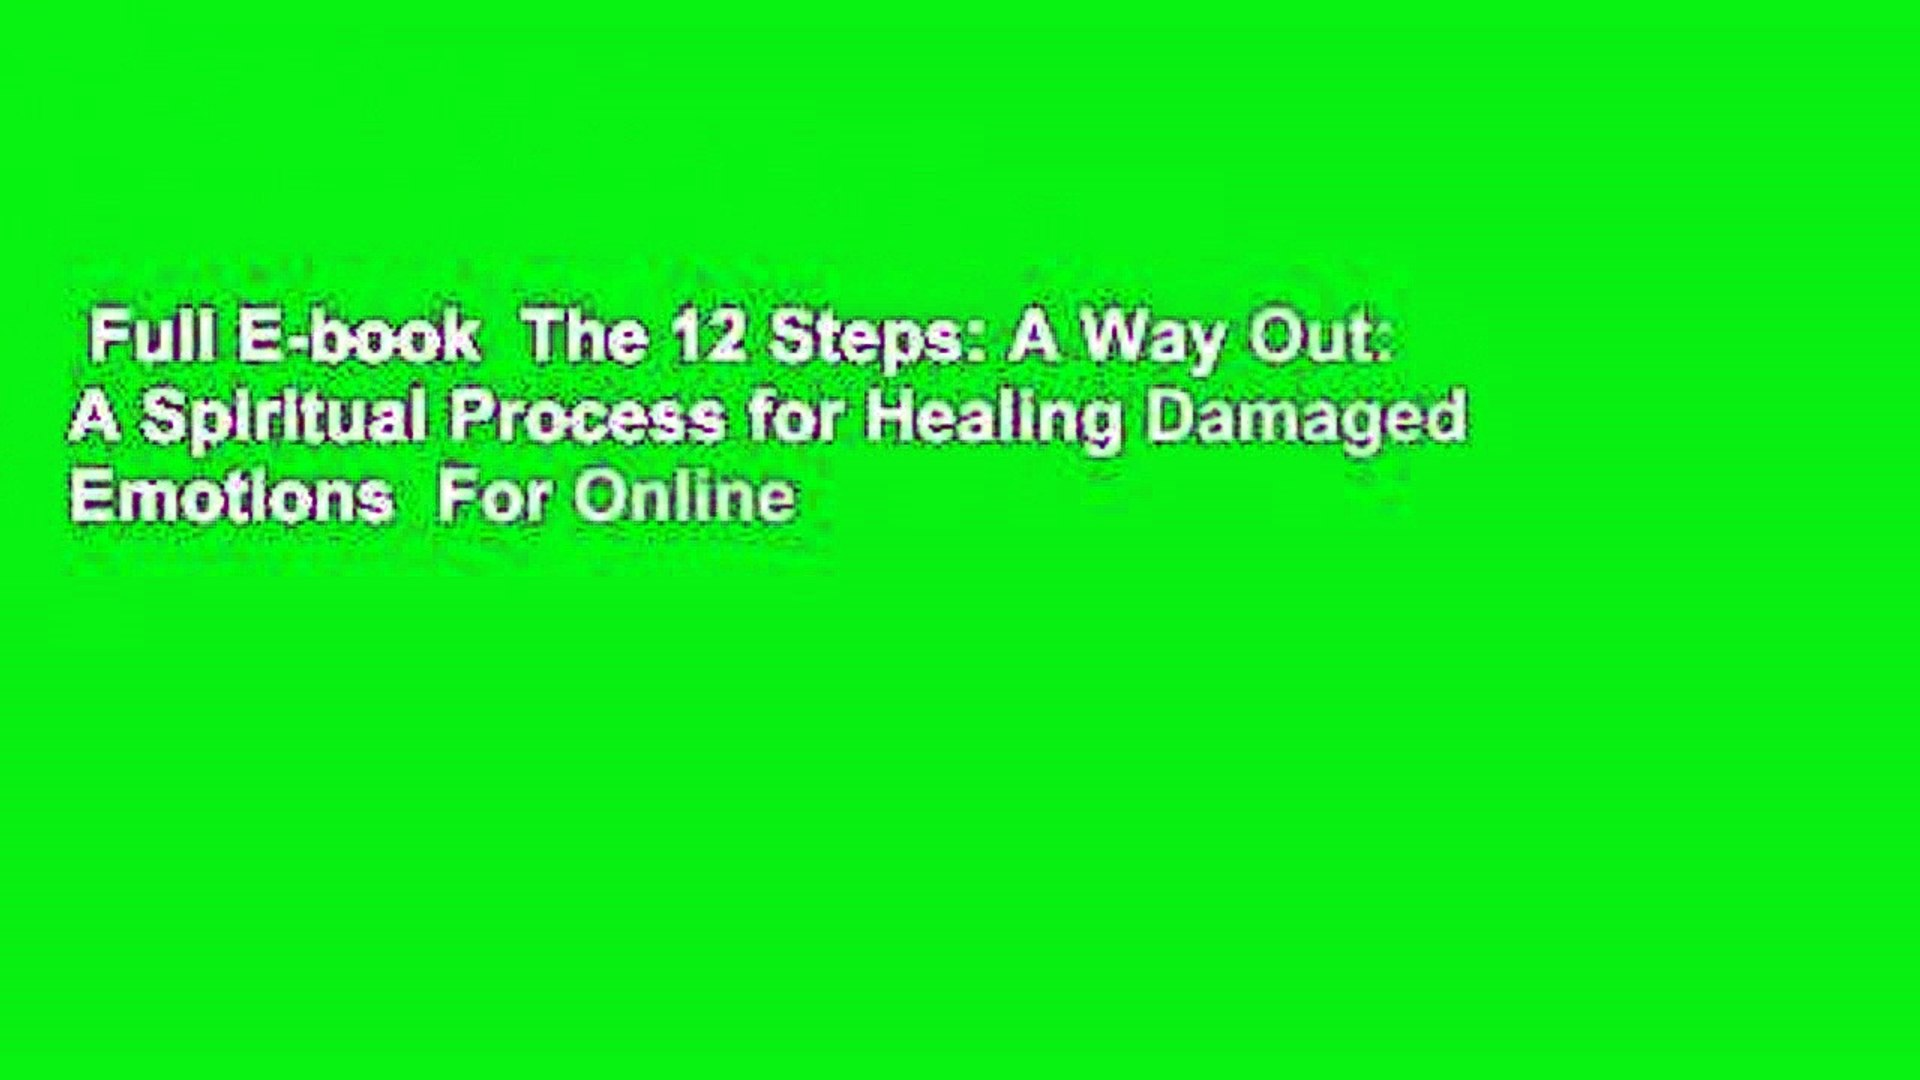 Full E-book  The 12 Steps: A Way Out: A Spiritual Process for Healing Damaged Emotions  For Online